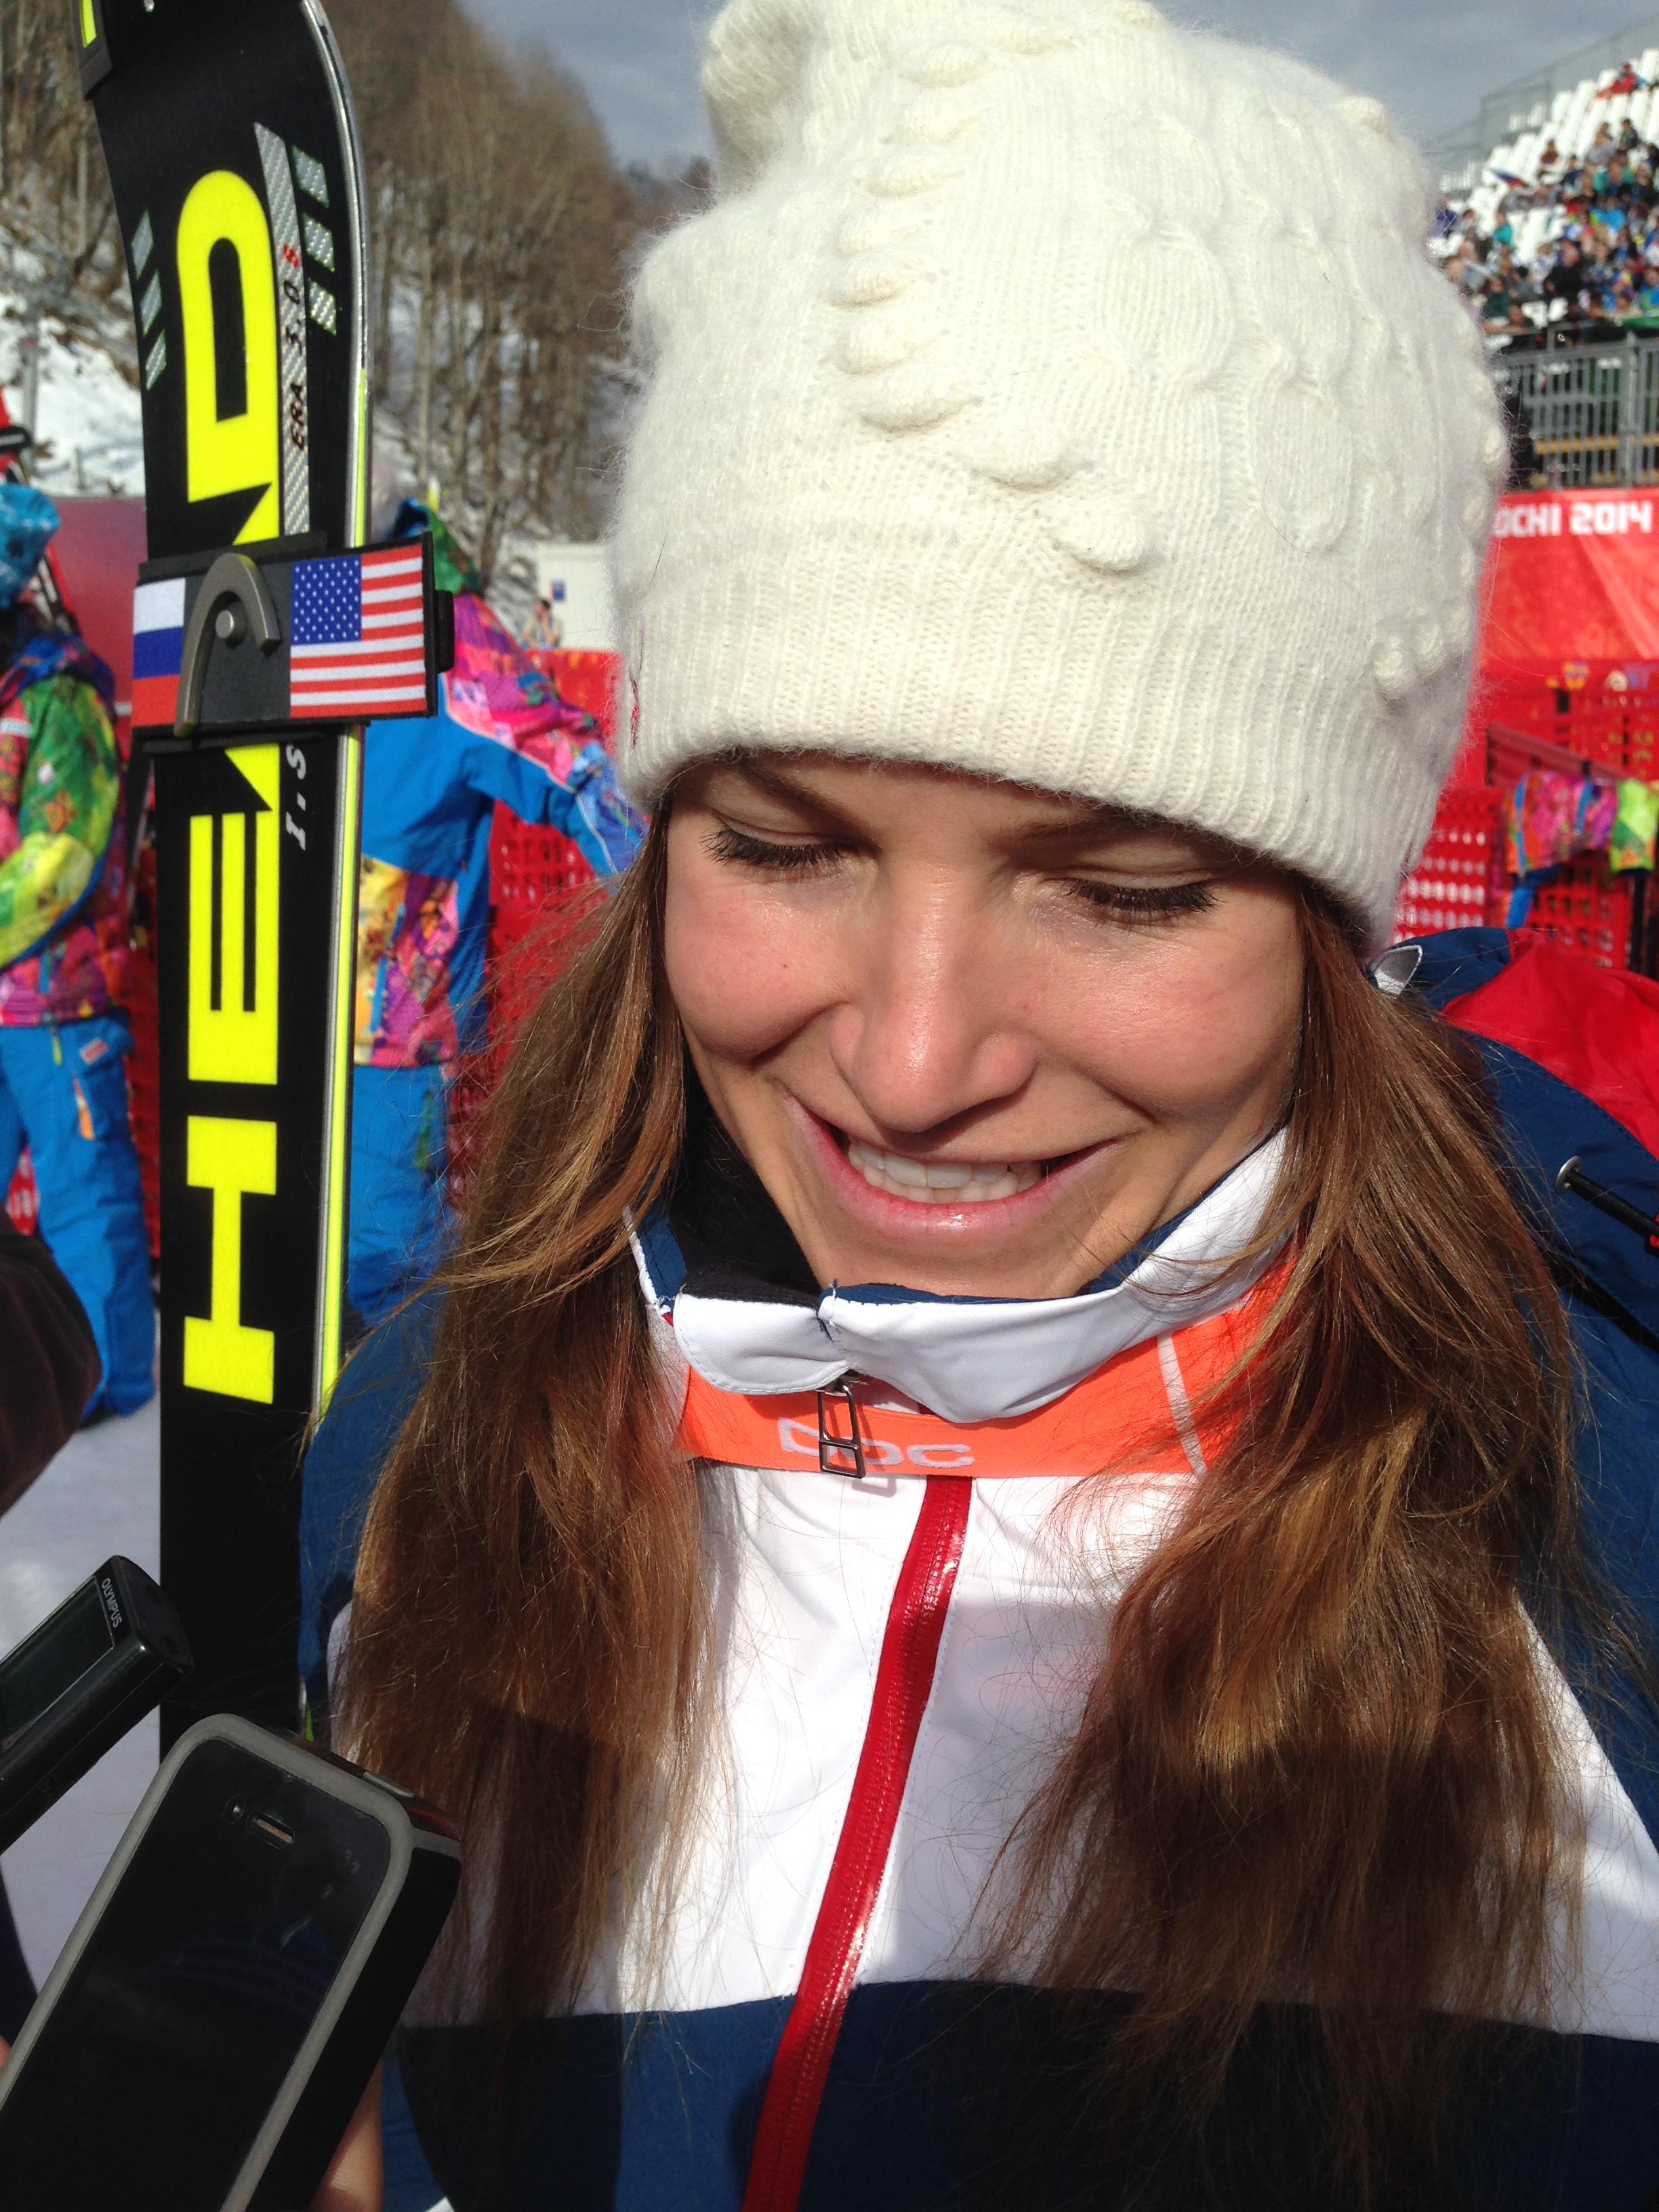 Julia Mancuso wins bronze in the Sochi 2014 super-combi